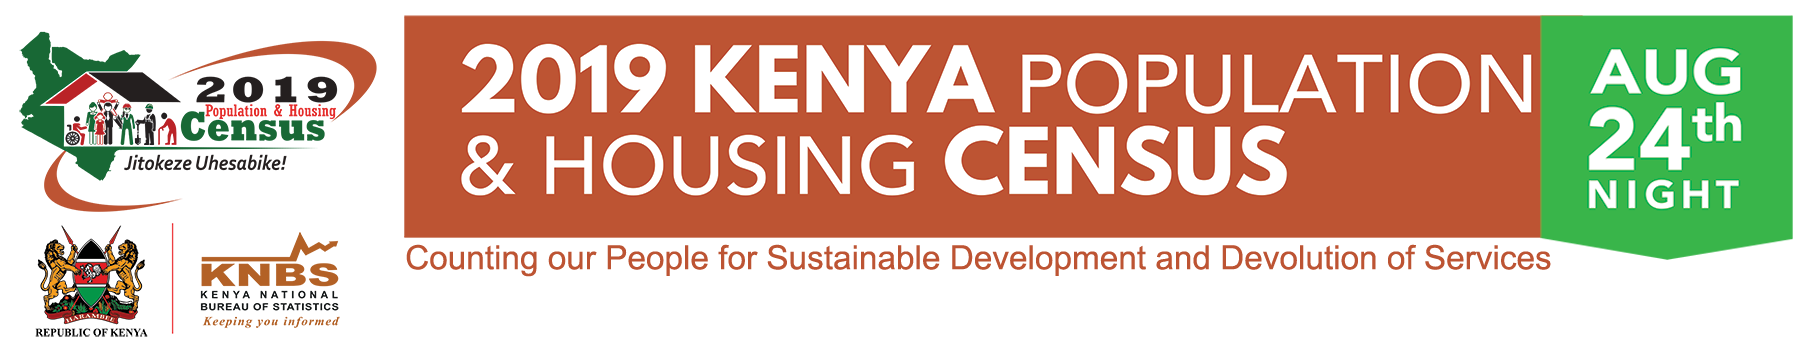 Home - Kenya National Bureau of Statistics, Nairobi, Kenya